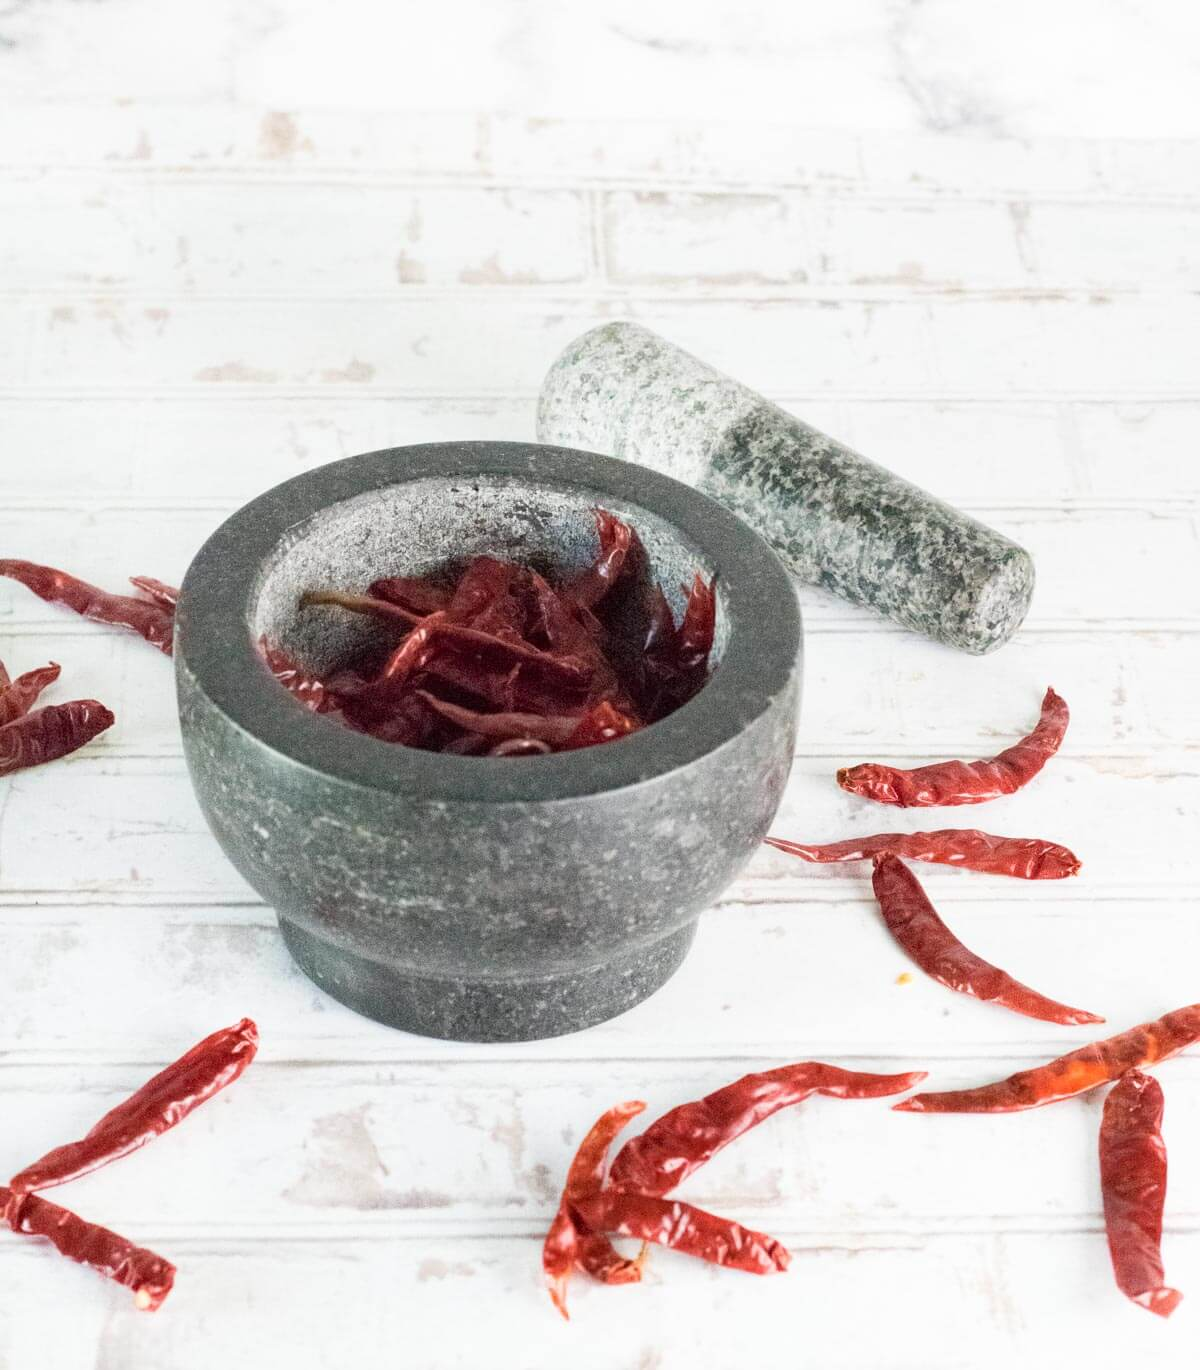 Grinding paprika peppers in mortar and pestle.